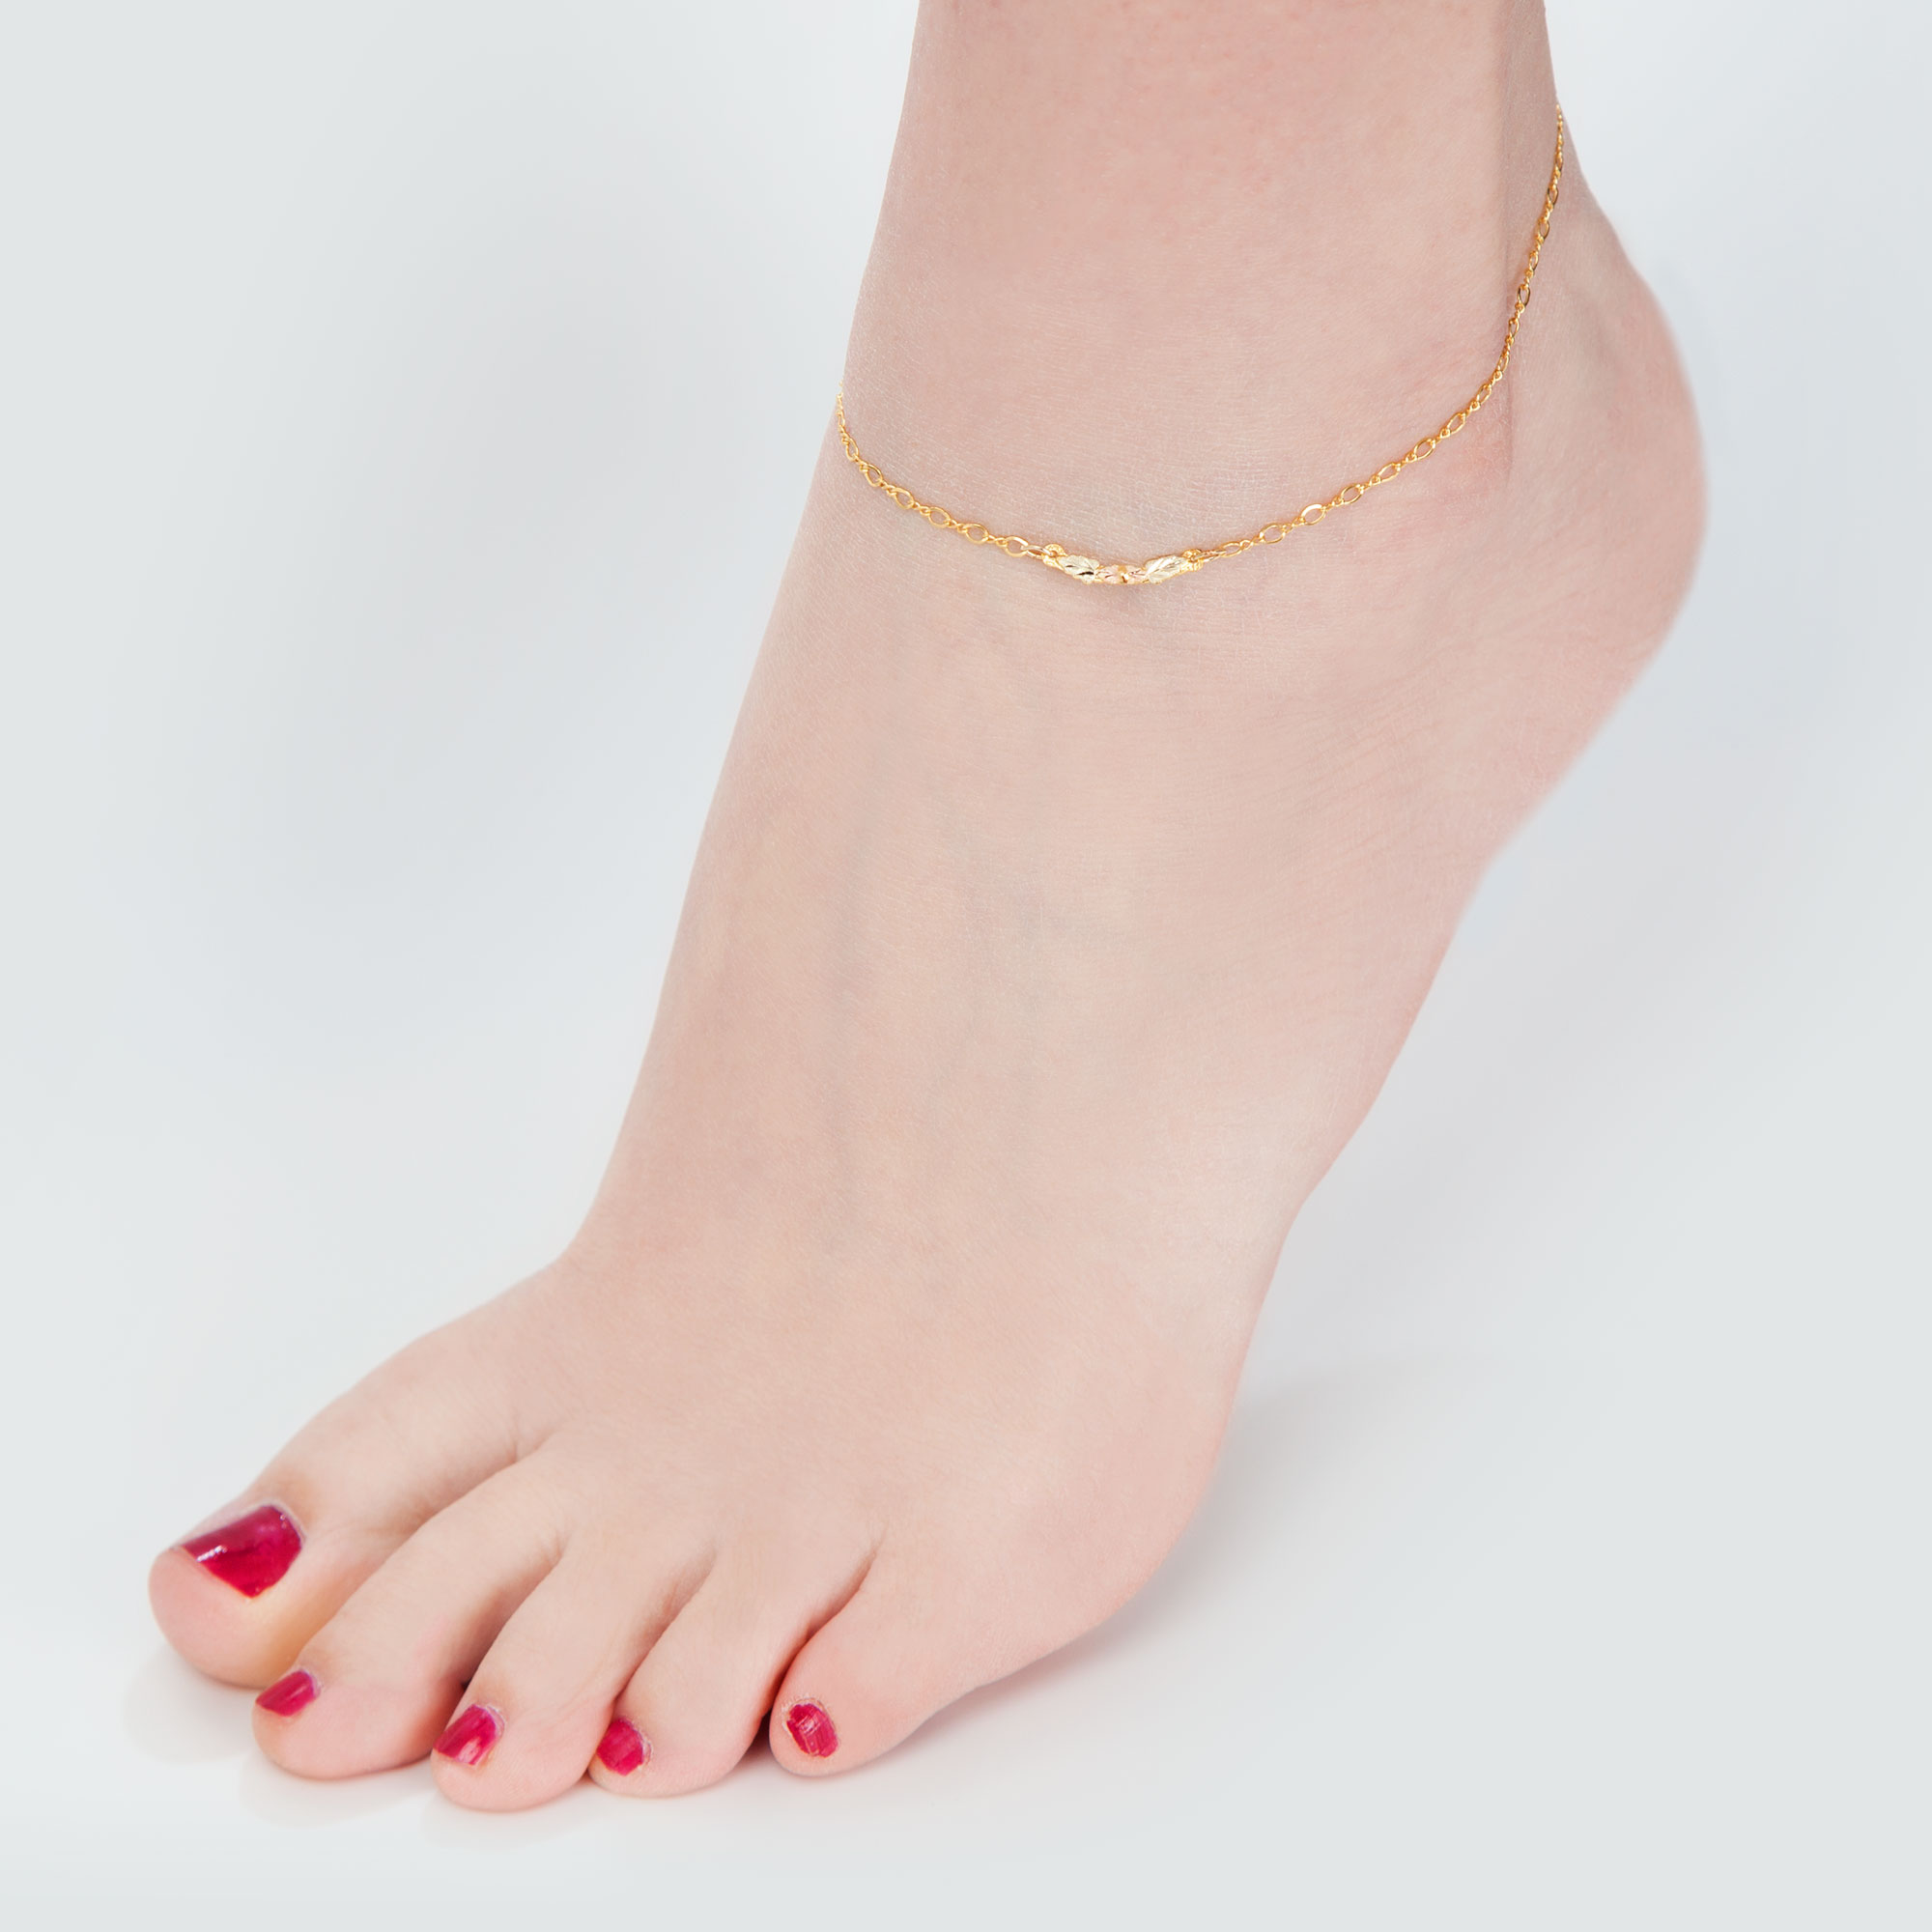 anklet ankle tattoos designs bracelet attractive on girly star tattoo new beautiful bracelets matching chain